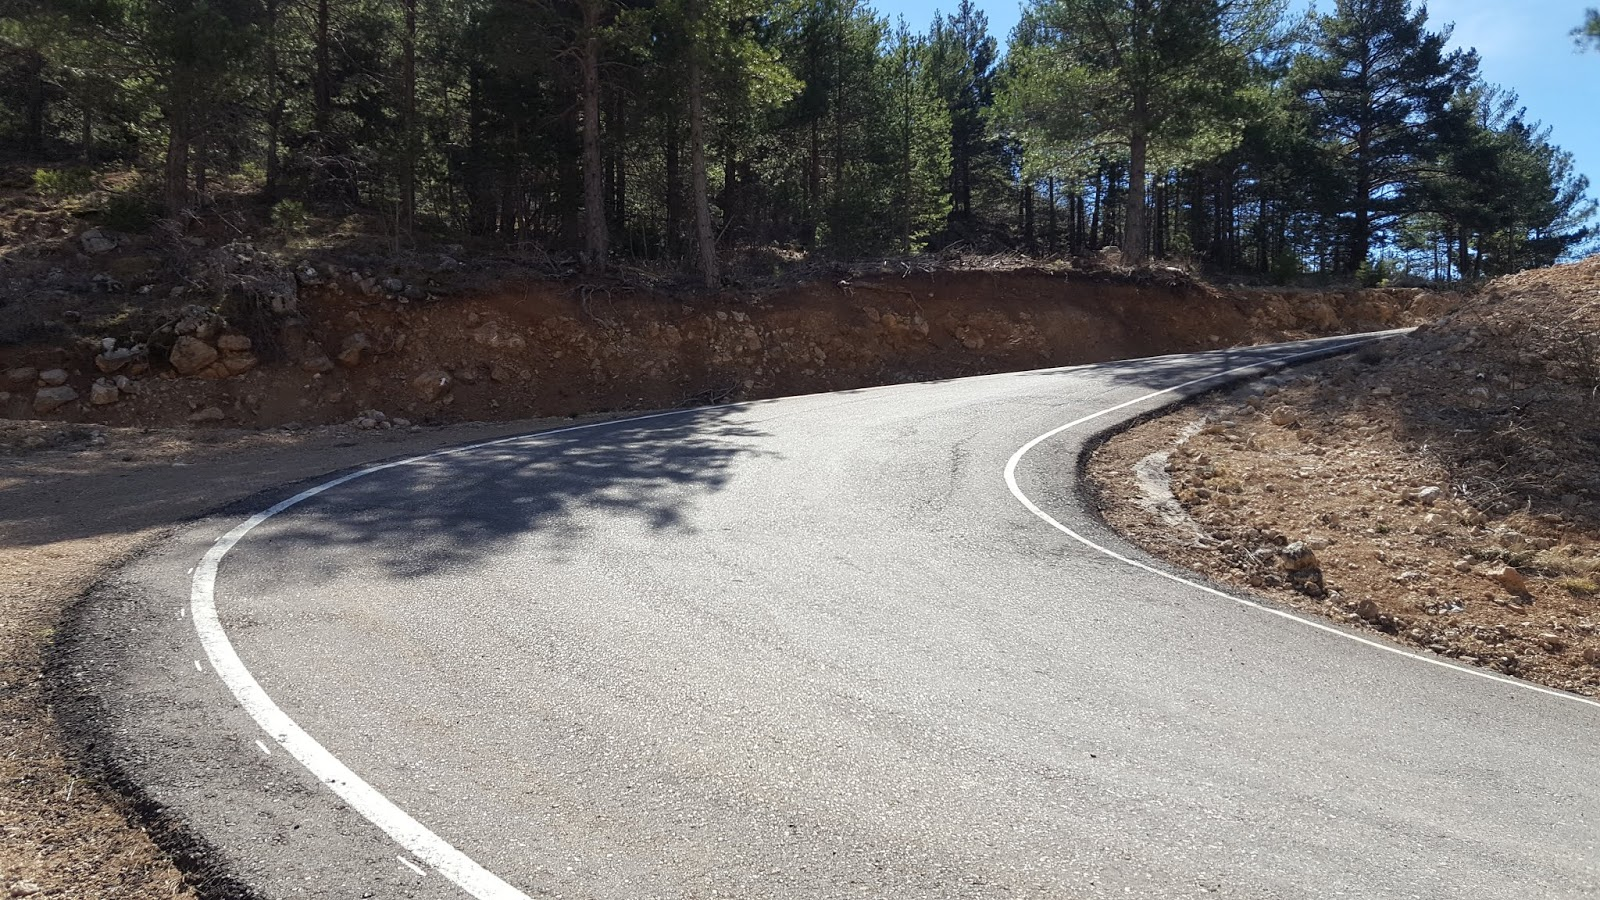 Hairpin on climb to Javalambre Astrophysical Observatory, Teruel